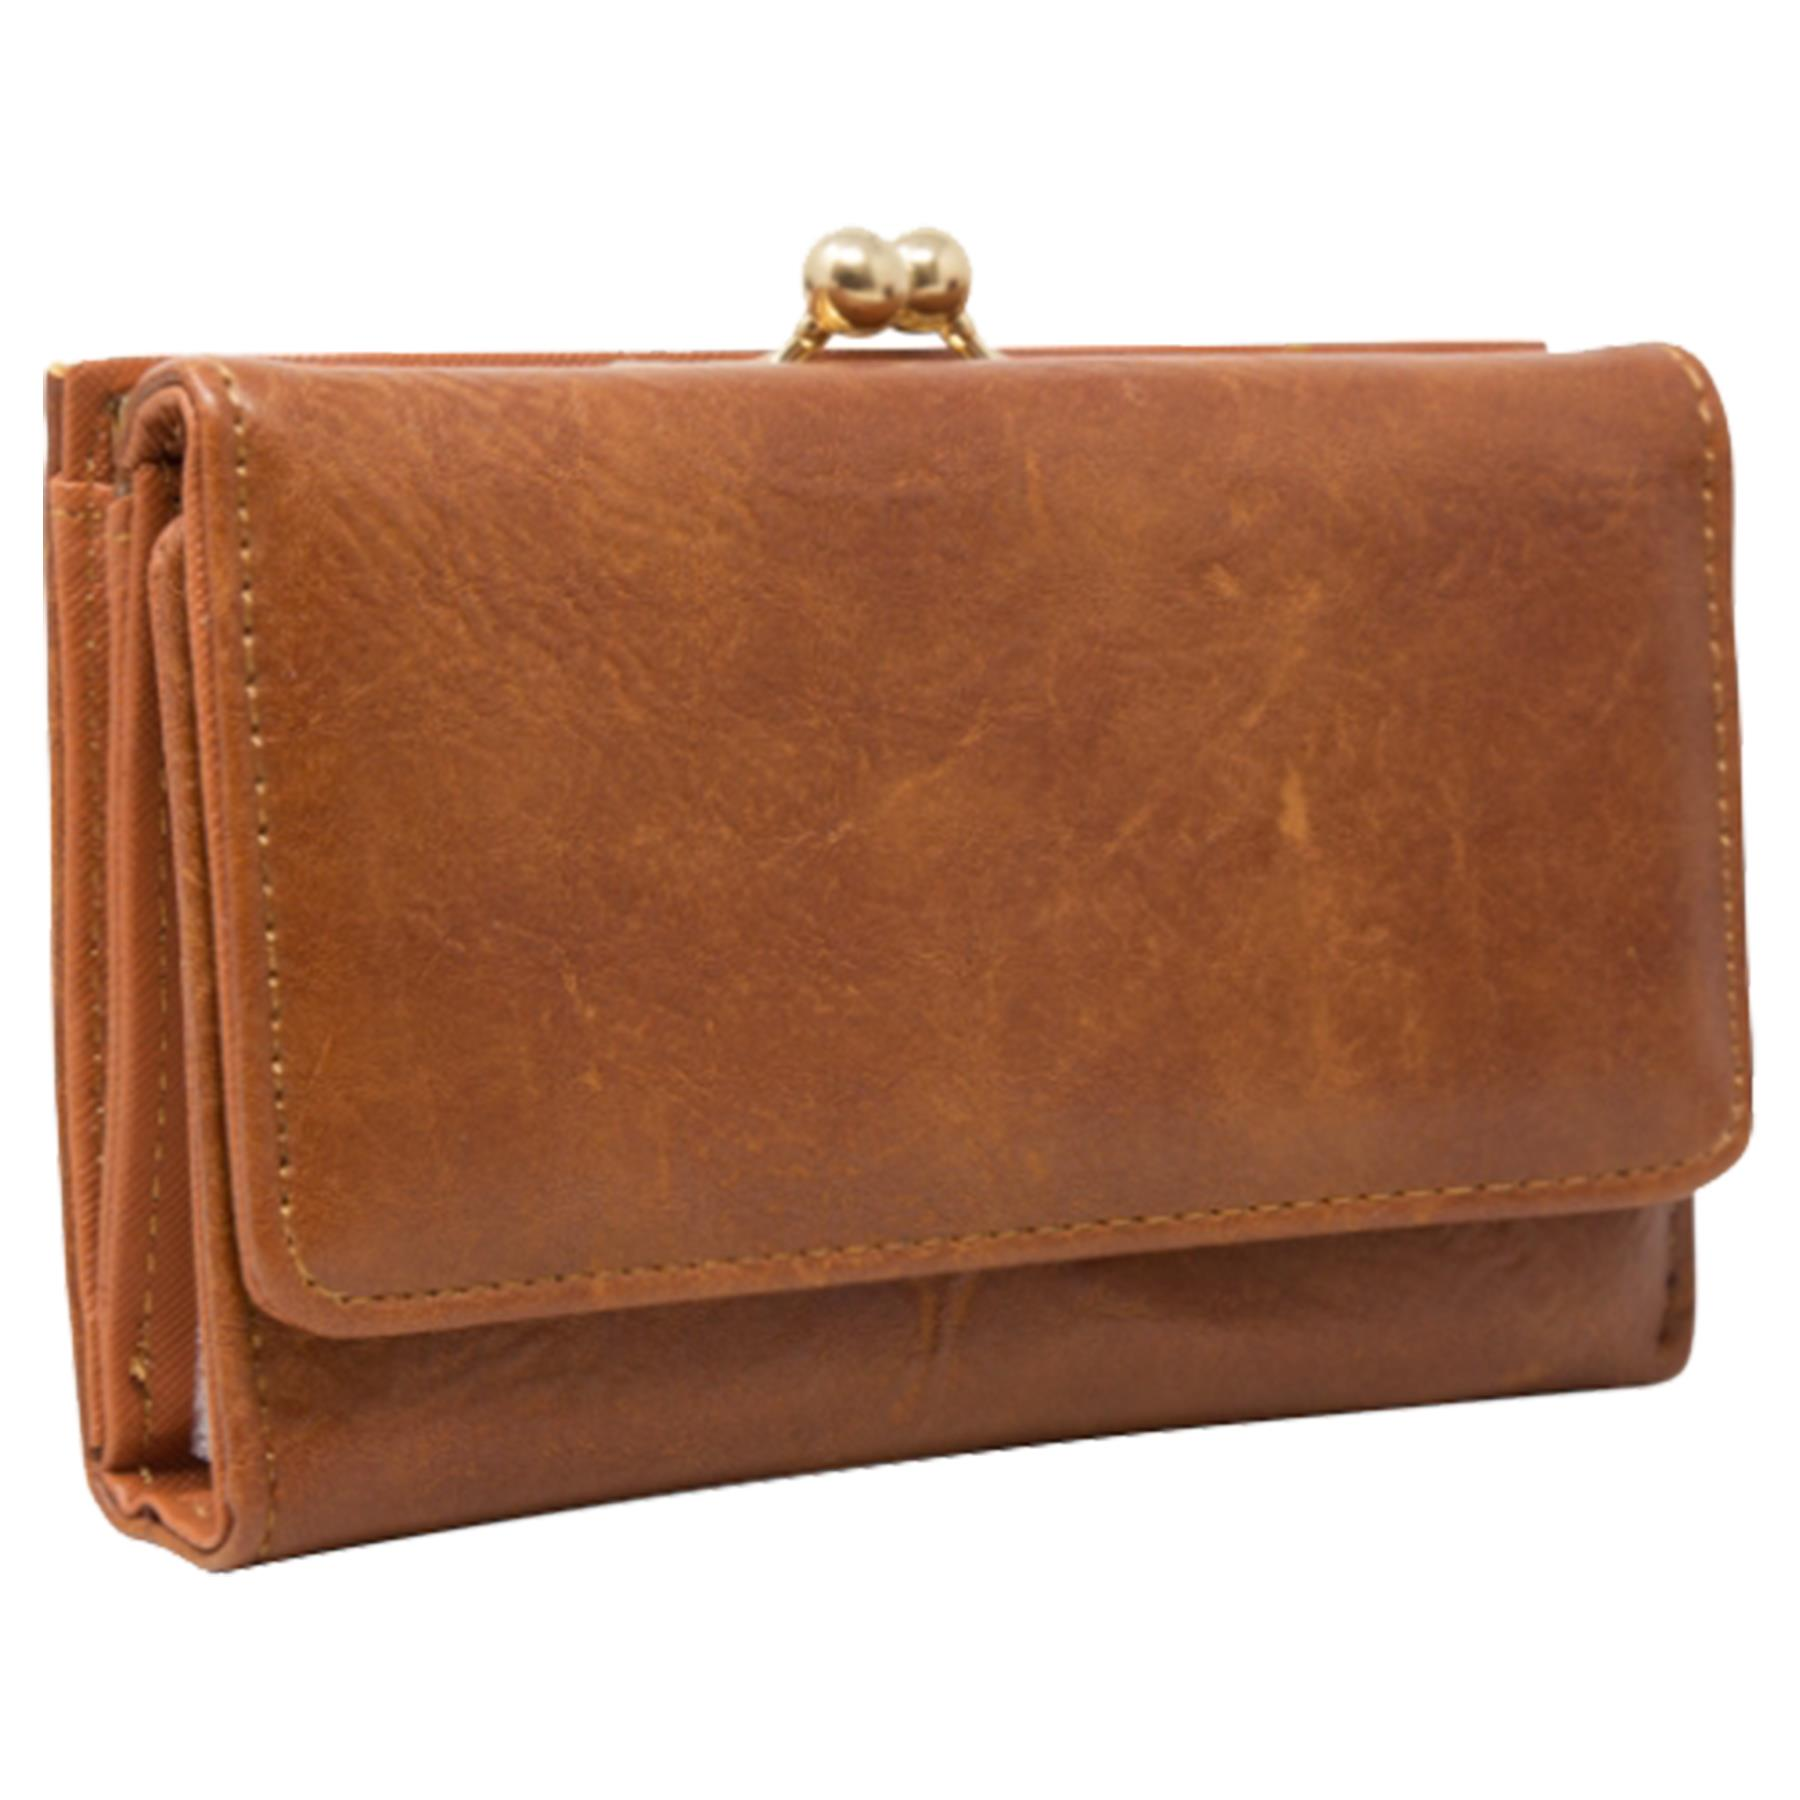 New-Synthetic-Leather-Kiss-Lock-Compartment-Ladies-Casual-Wallet-Purse thumbnail 11